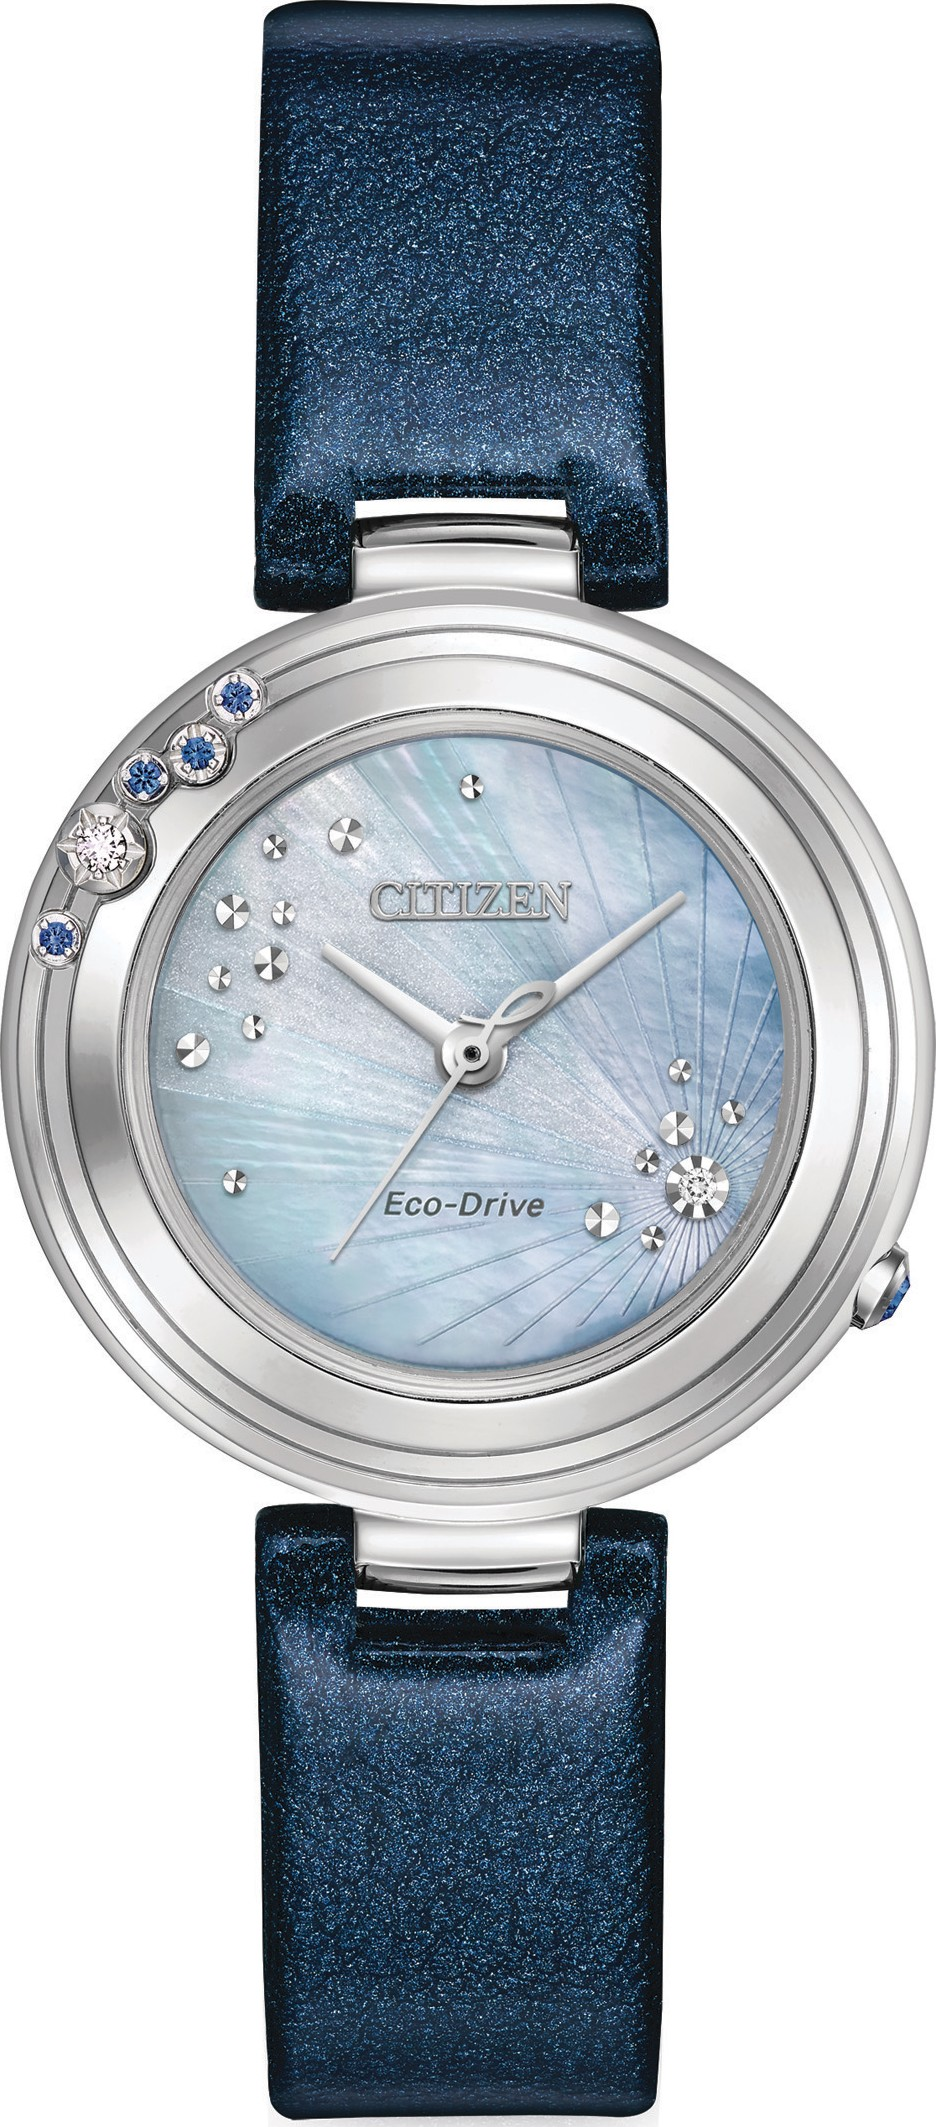 CITIZEN L CARINA LIMITED EDITION WATCH 28MM